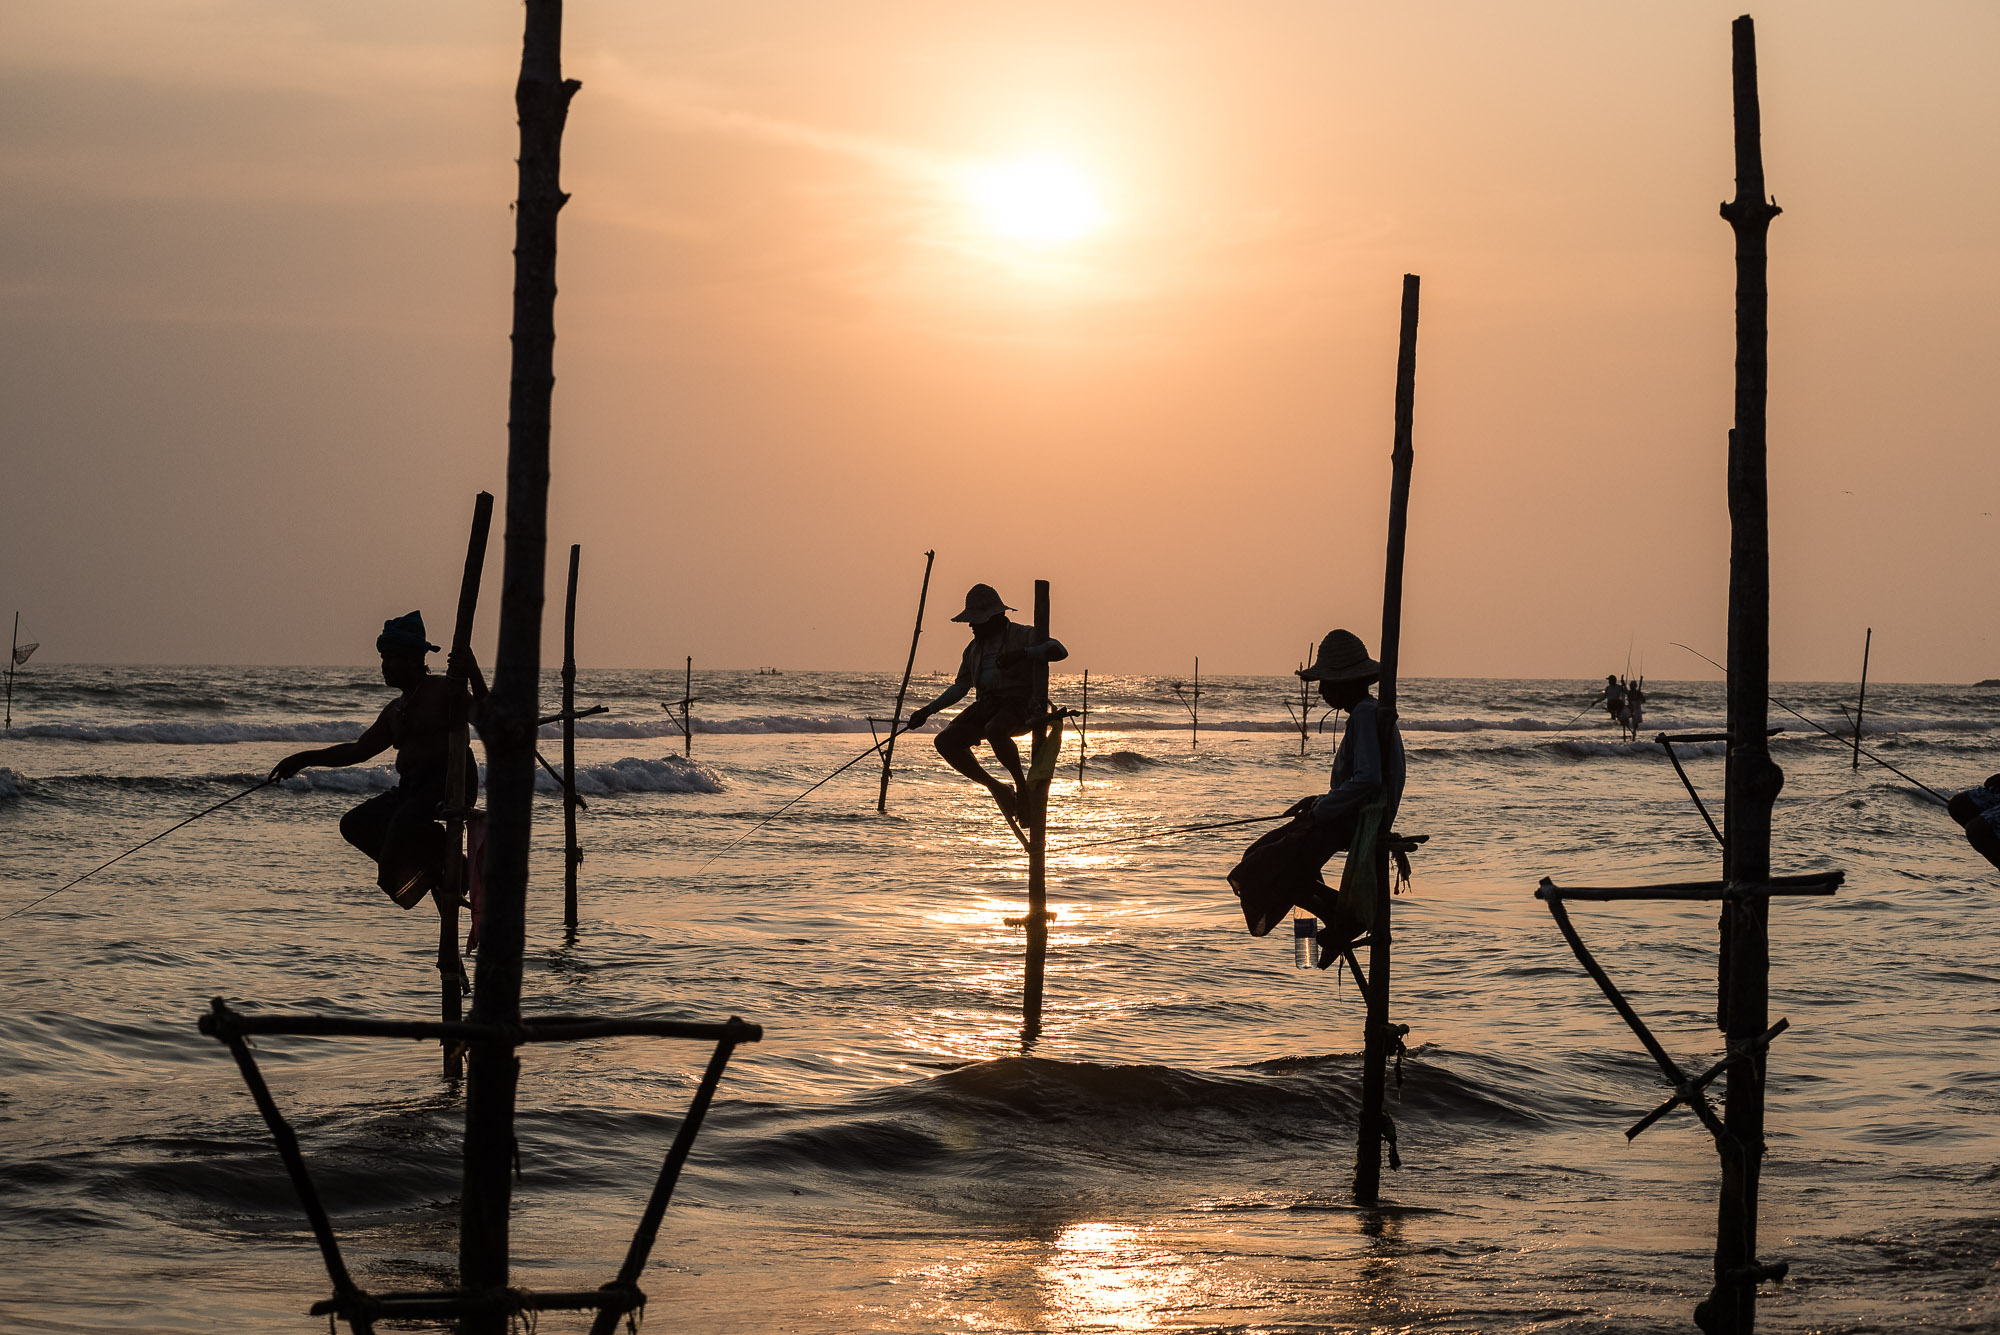 Stilt-fishermen, Sri Lanka